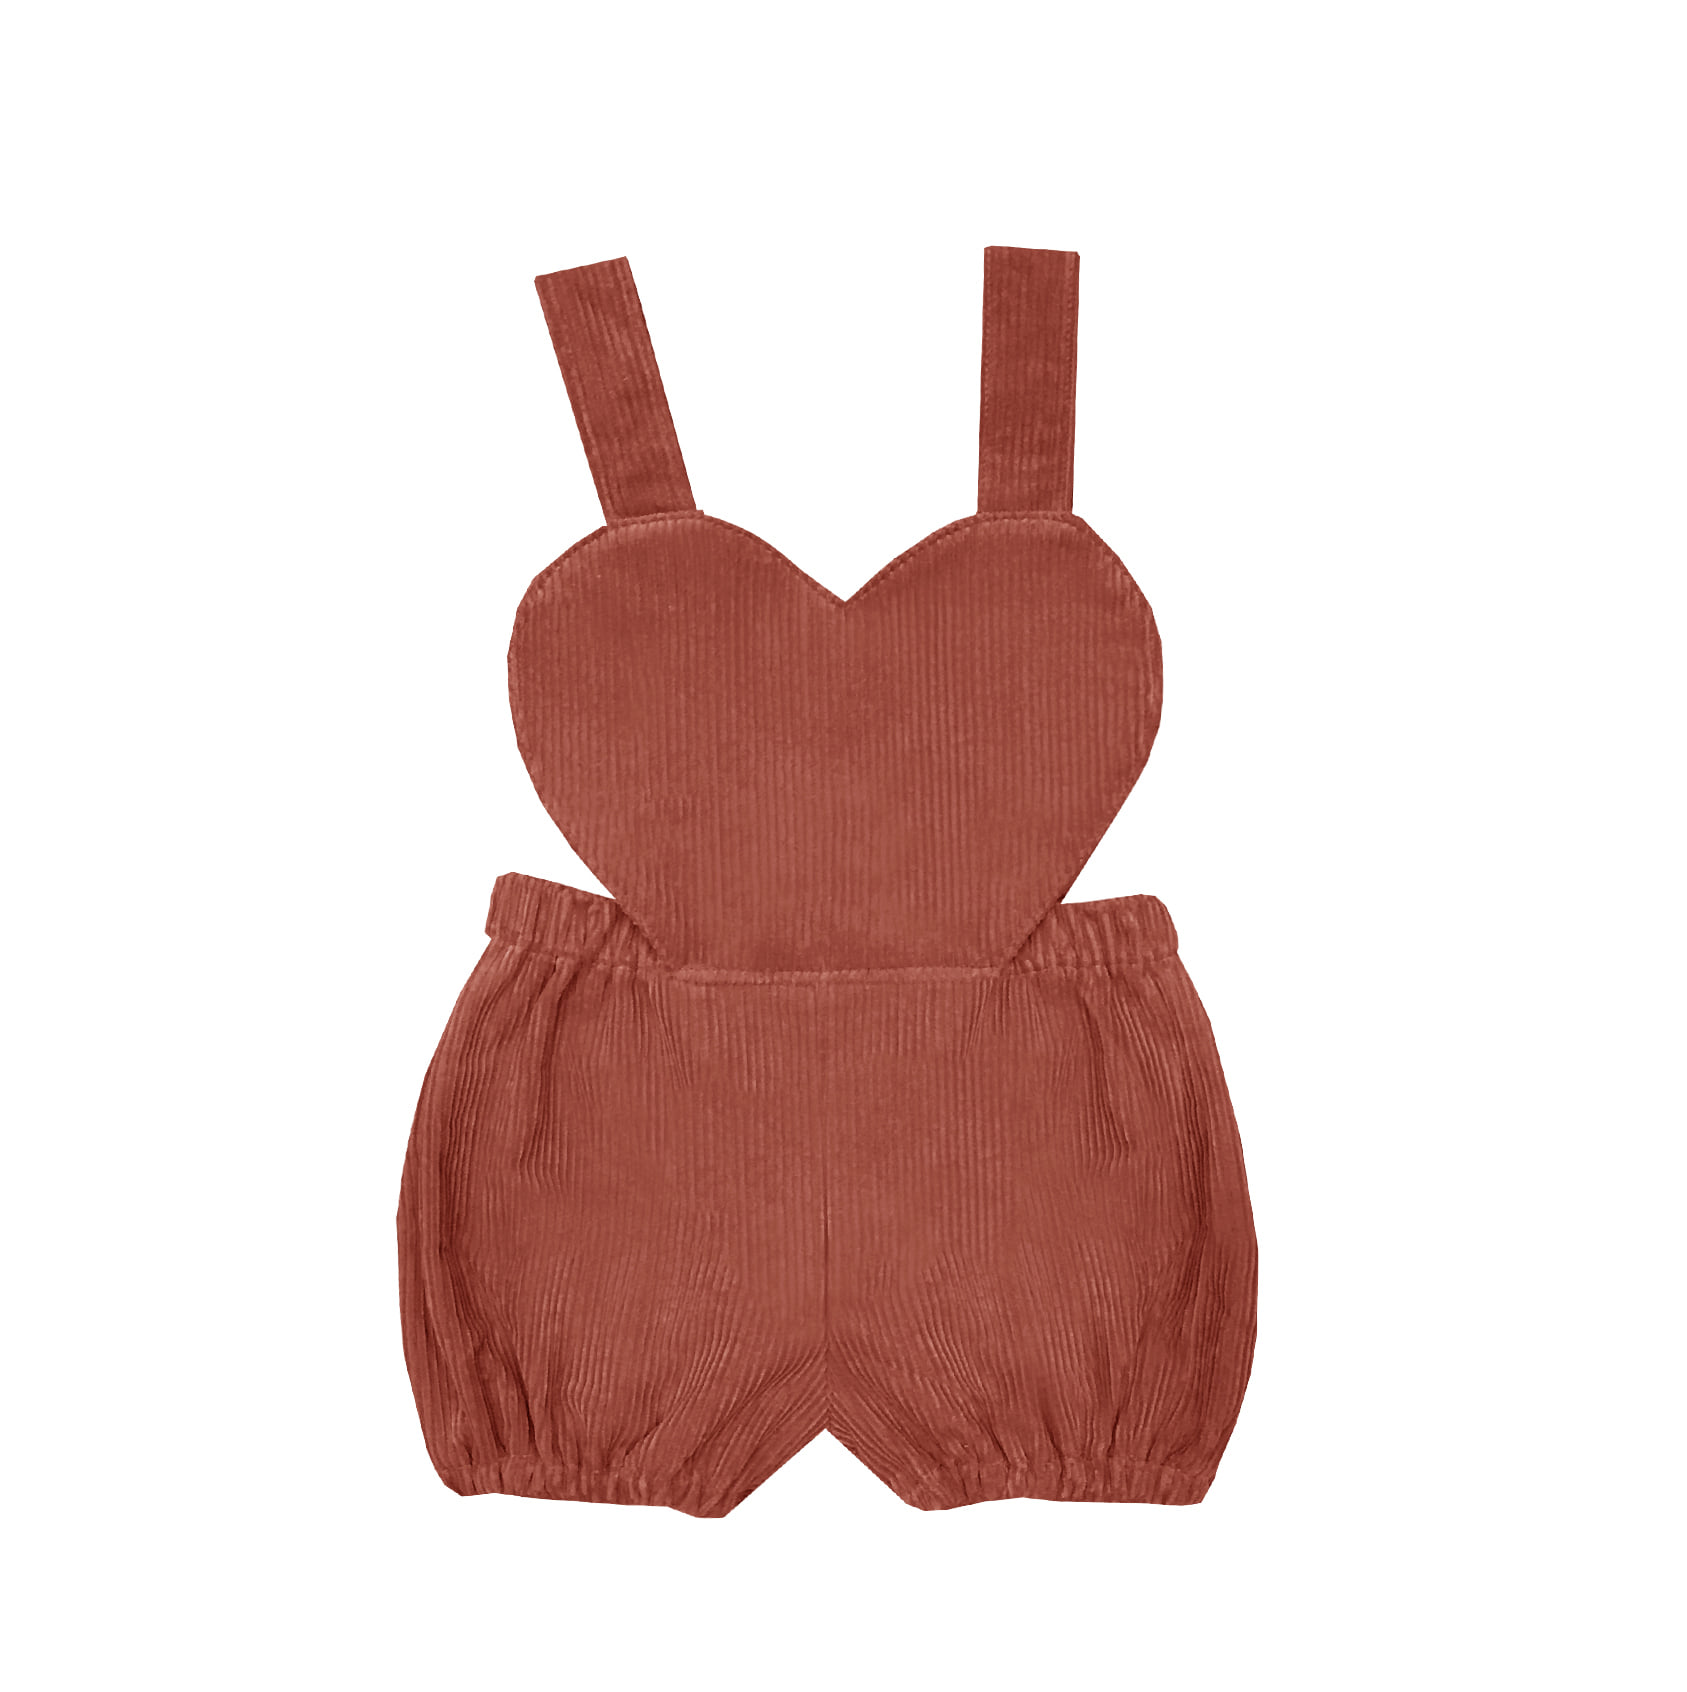 heart corduroy suspender suit (dark orange)